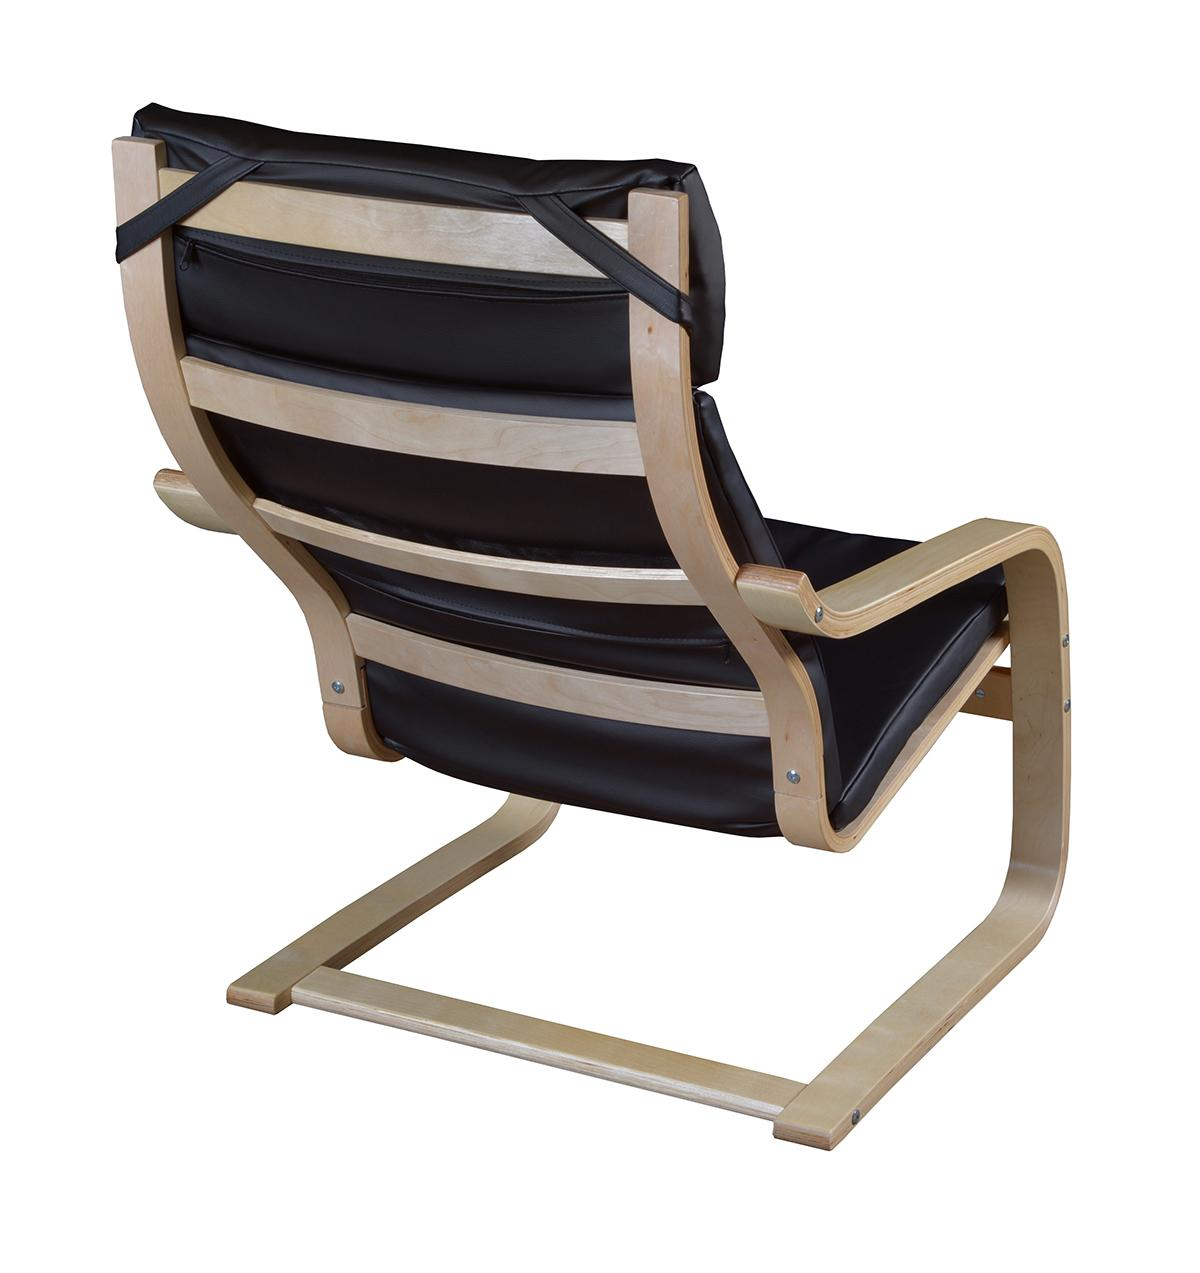 Amazing Niche N2020Lntbk Mia Bentwood Reclining Lounge Chair 36 Natural Black Vinyl Evergreenethics Interior Chair Design Evergreenethicsorg